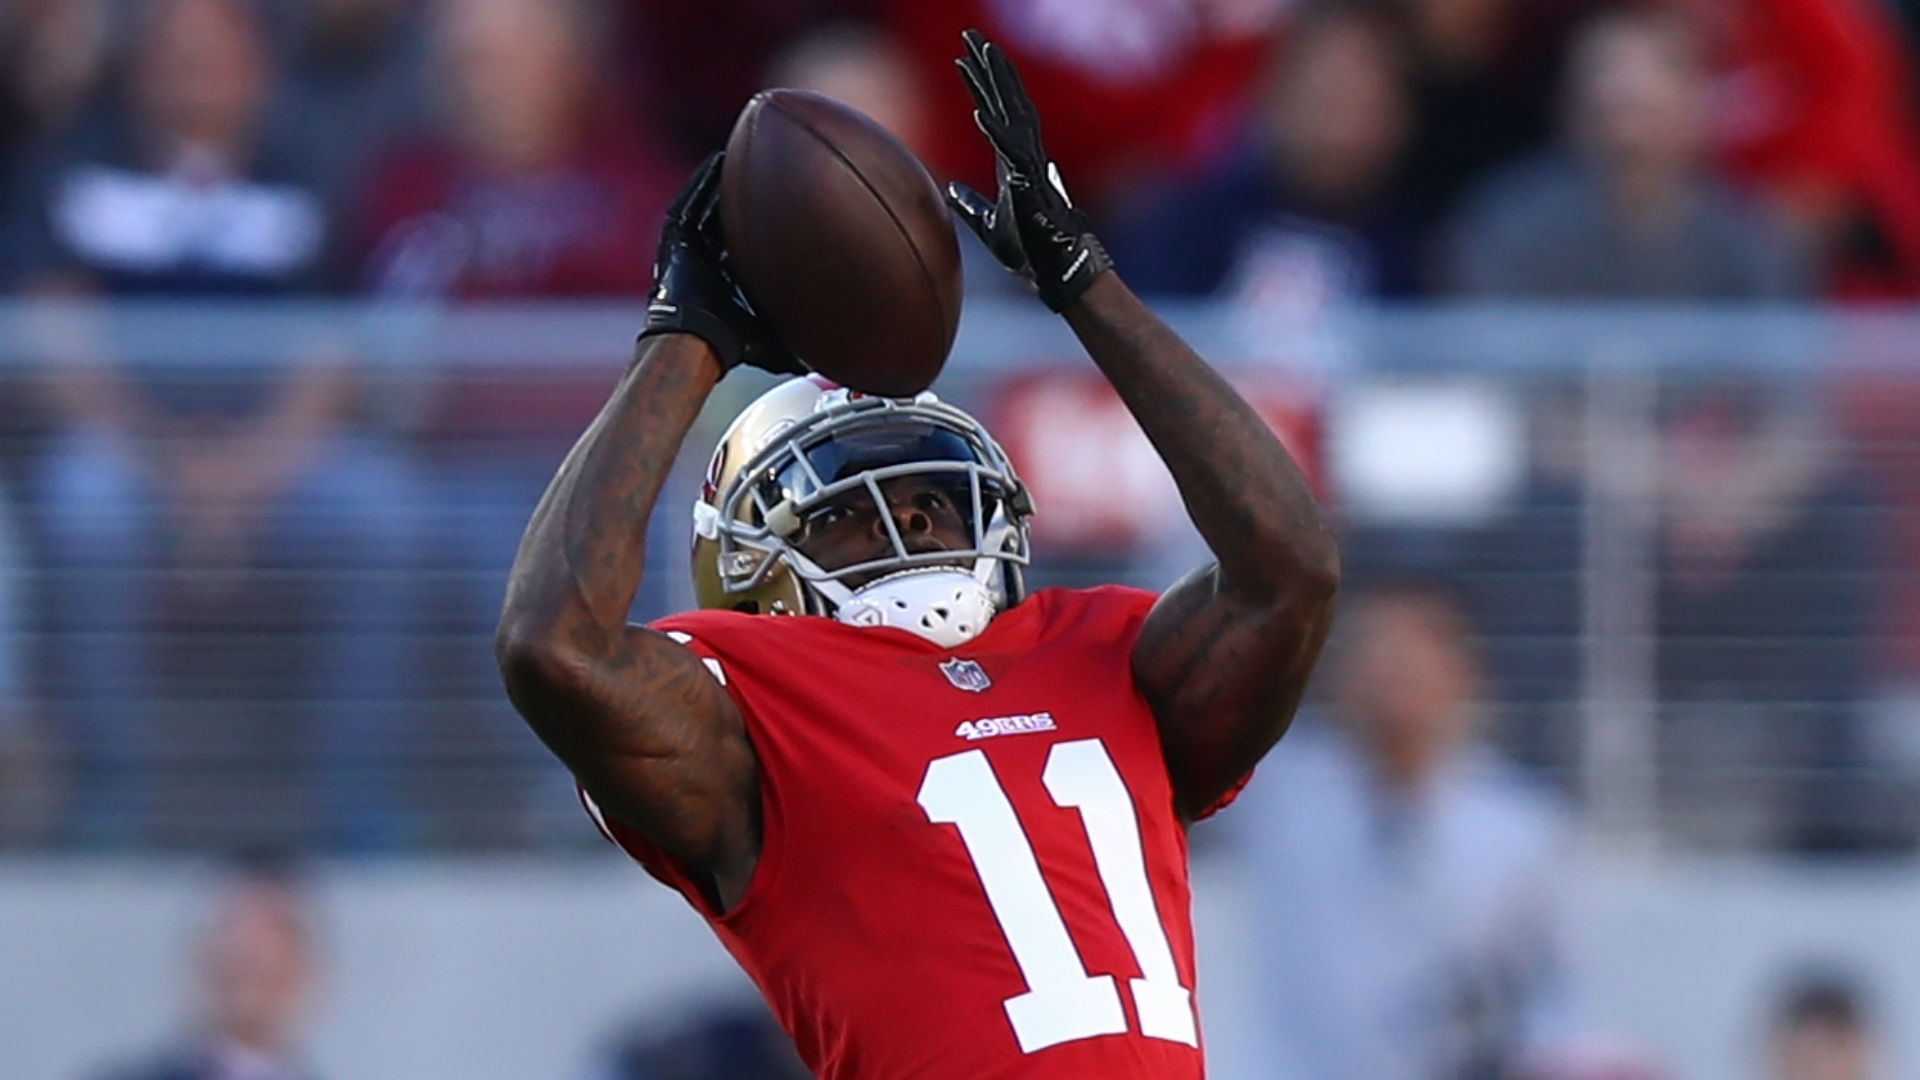 Marquise Goodwin helps 49ers to emotional win after baby son's death